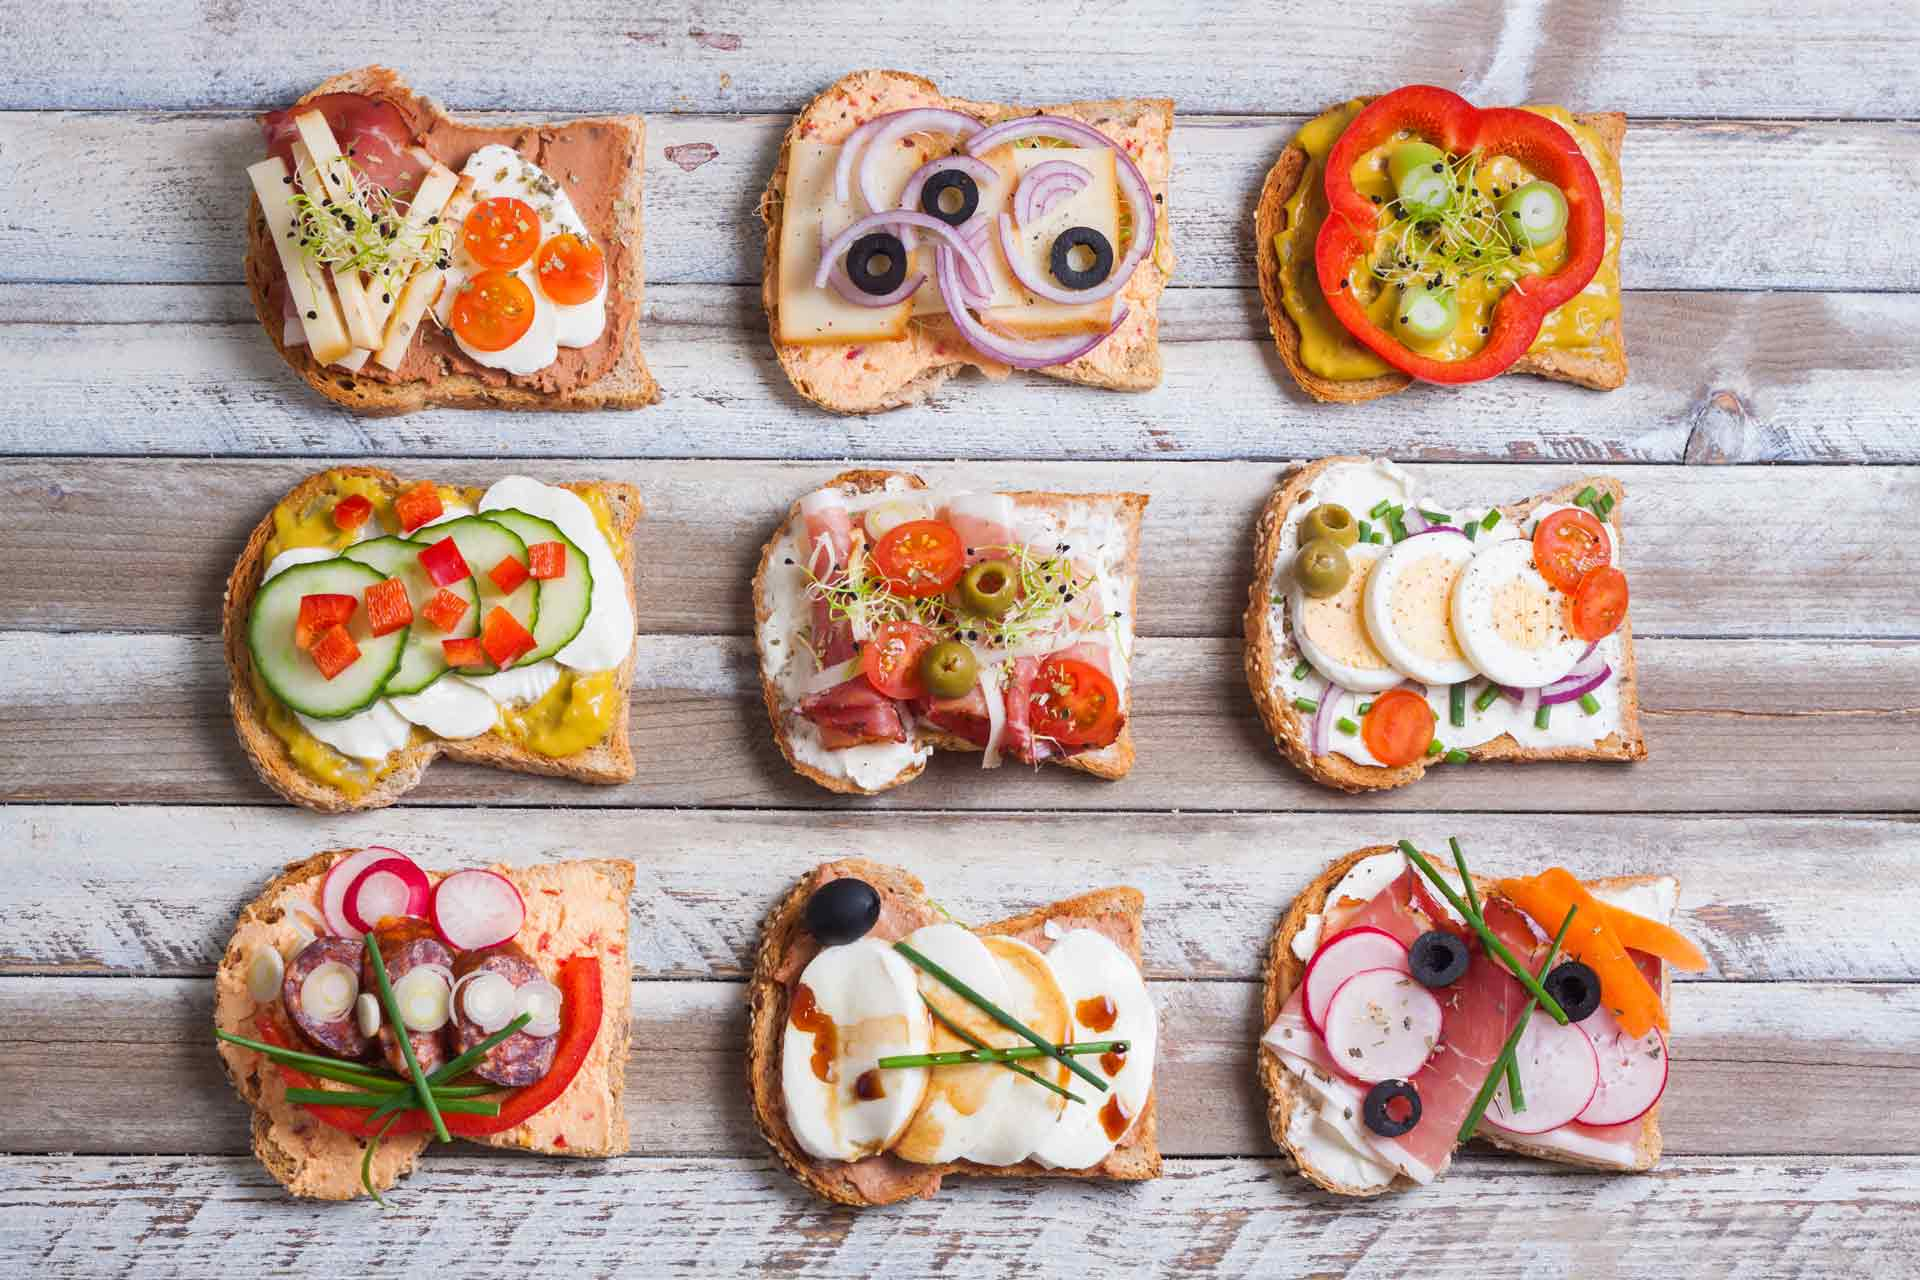 Awesome Sandwich Toppings